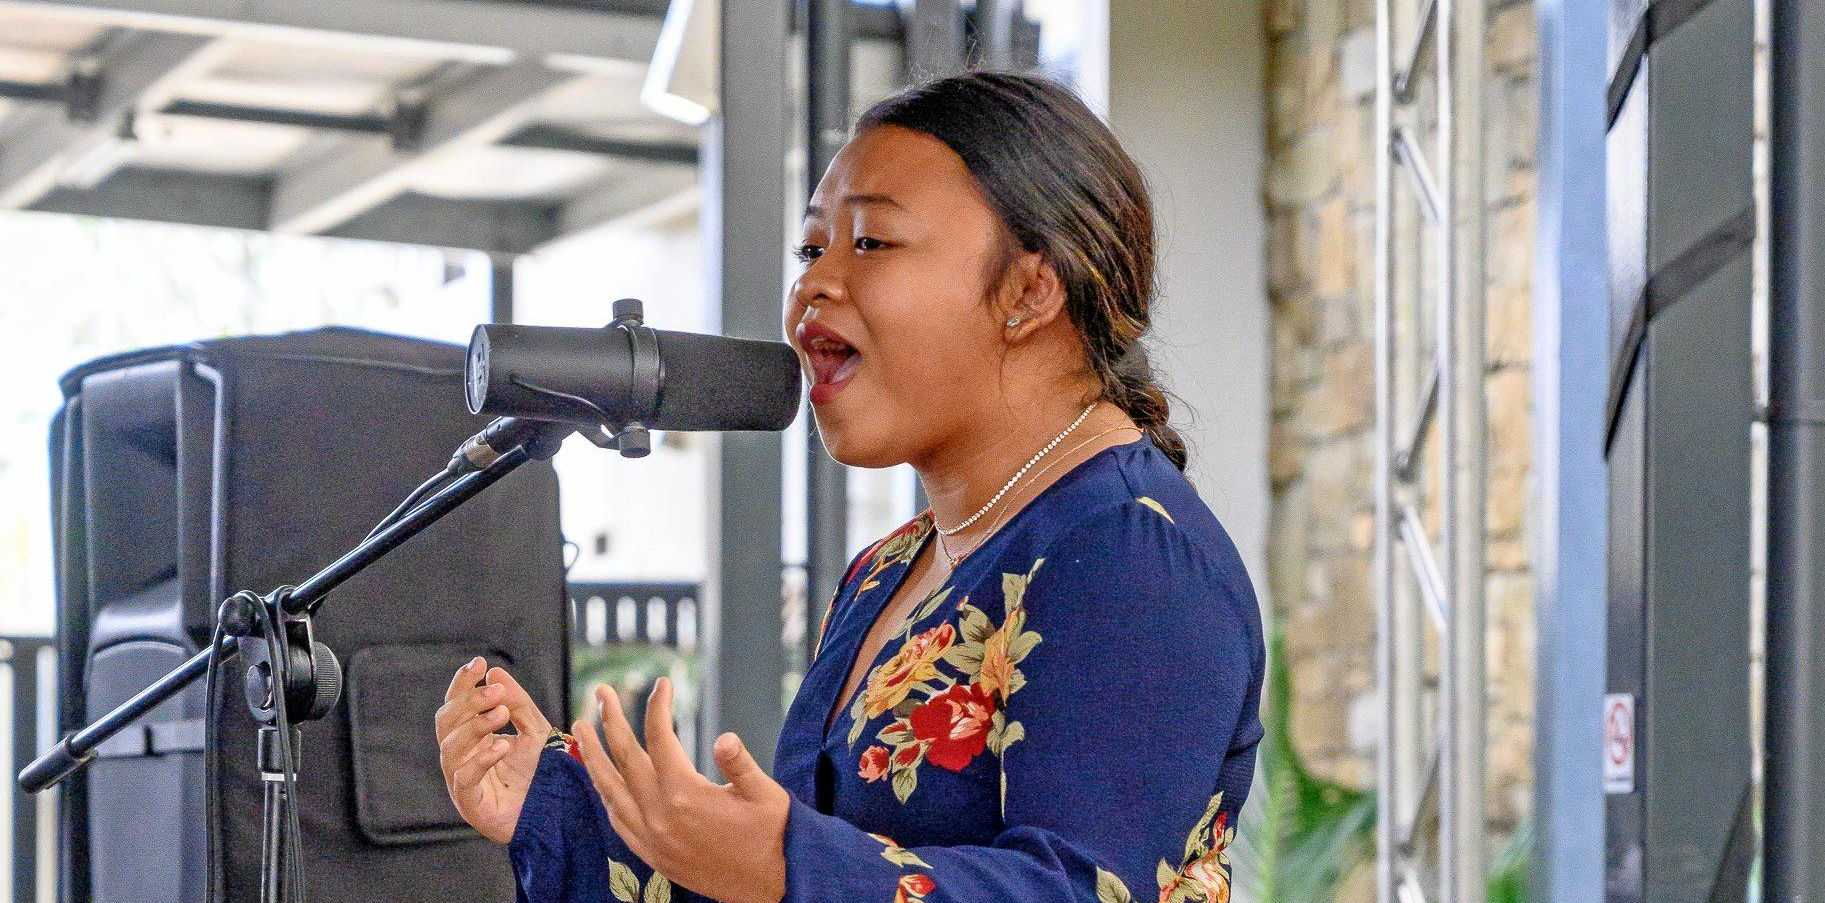 POWERHOUSE: Young Whitsunday's Got Talent heat two winner Nicole Copo performs at Reef Gateway Hotel.